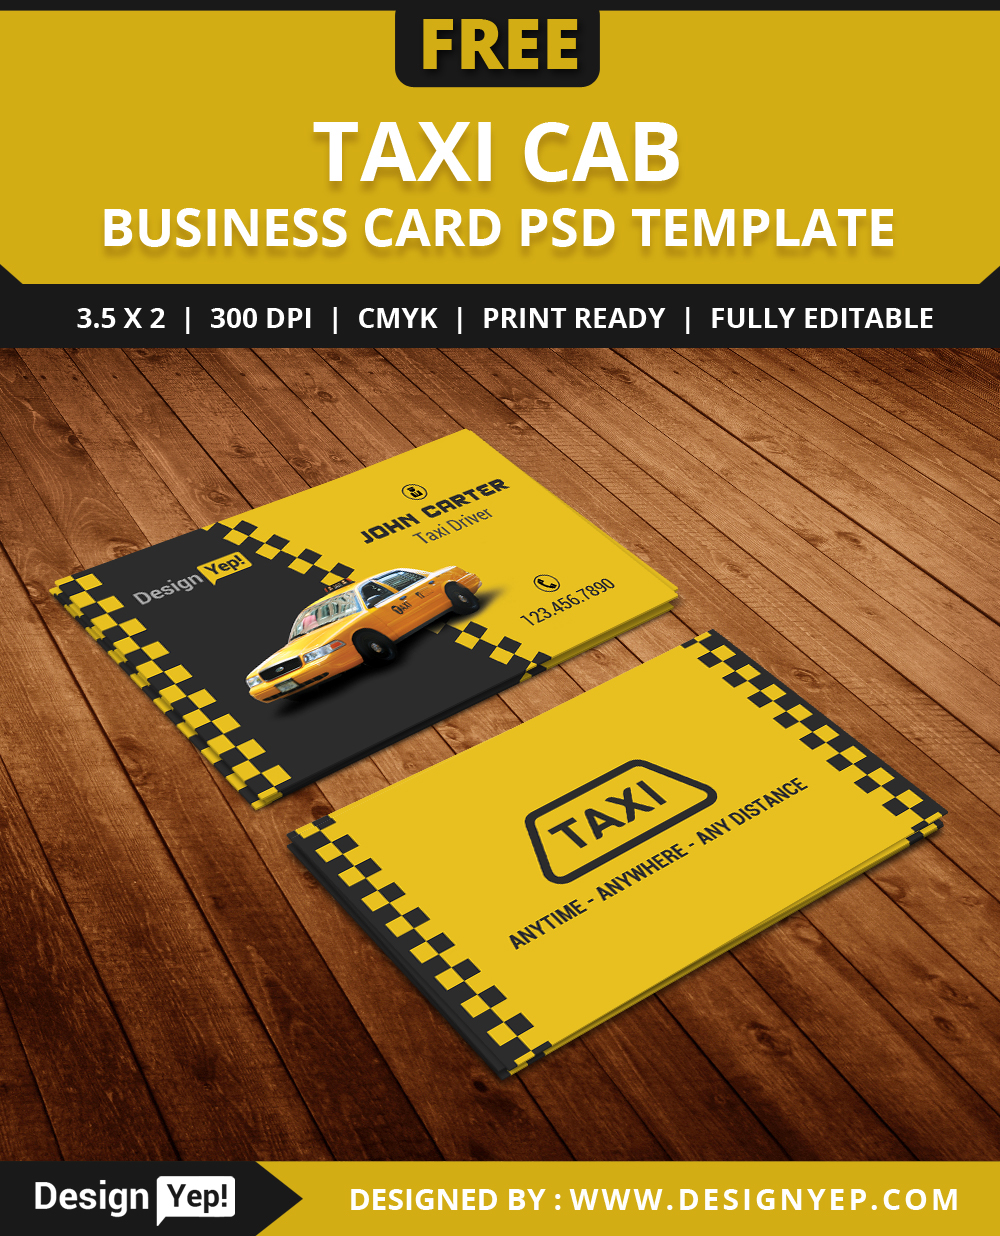 free taxi cab business card template psd on behance. Black Bedroom Furniture Sets. Home Design Ideas